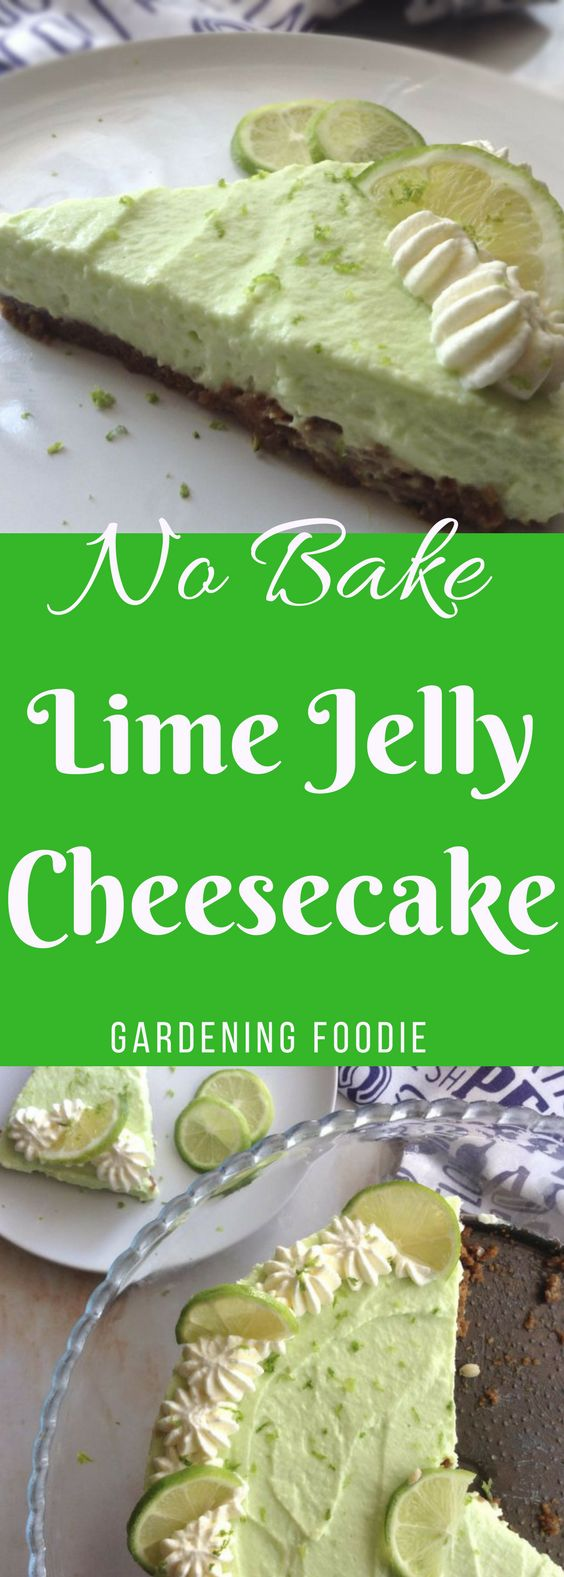 Prepared in just 10 minutes and set and ready to eat in 2 hours makes No Bake Lime Jelly cheesecake a great dessert. I absolutely love the tangy taste of lime and the ginger cookie crust which creates such a delicious flavor combination.